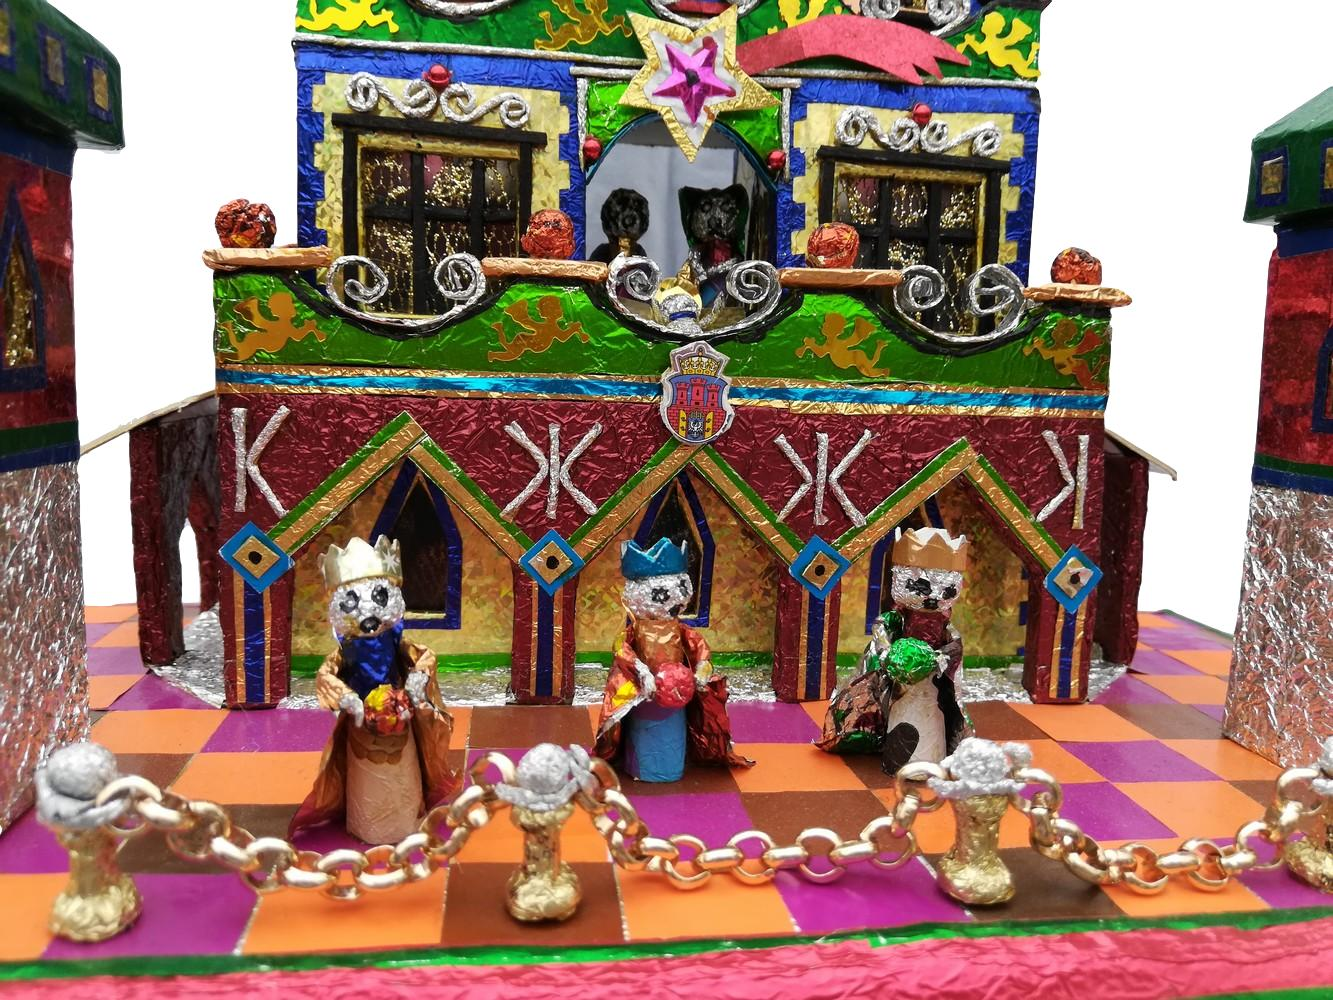 One of a kind Krakow Nativity with three kings and Krakow name and flag front detail